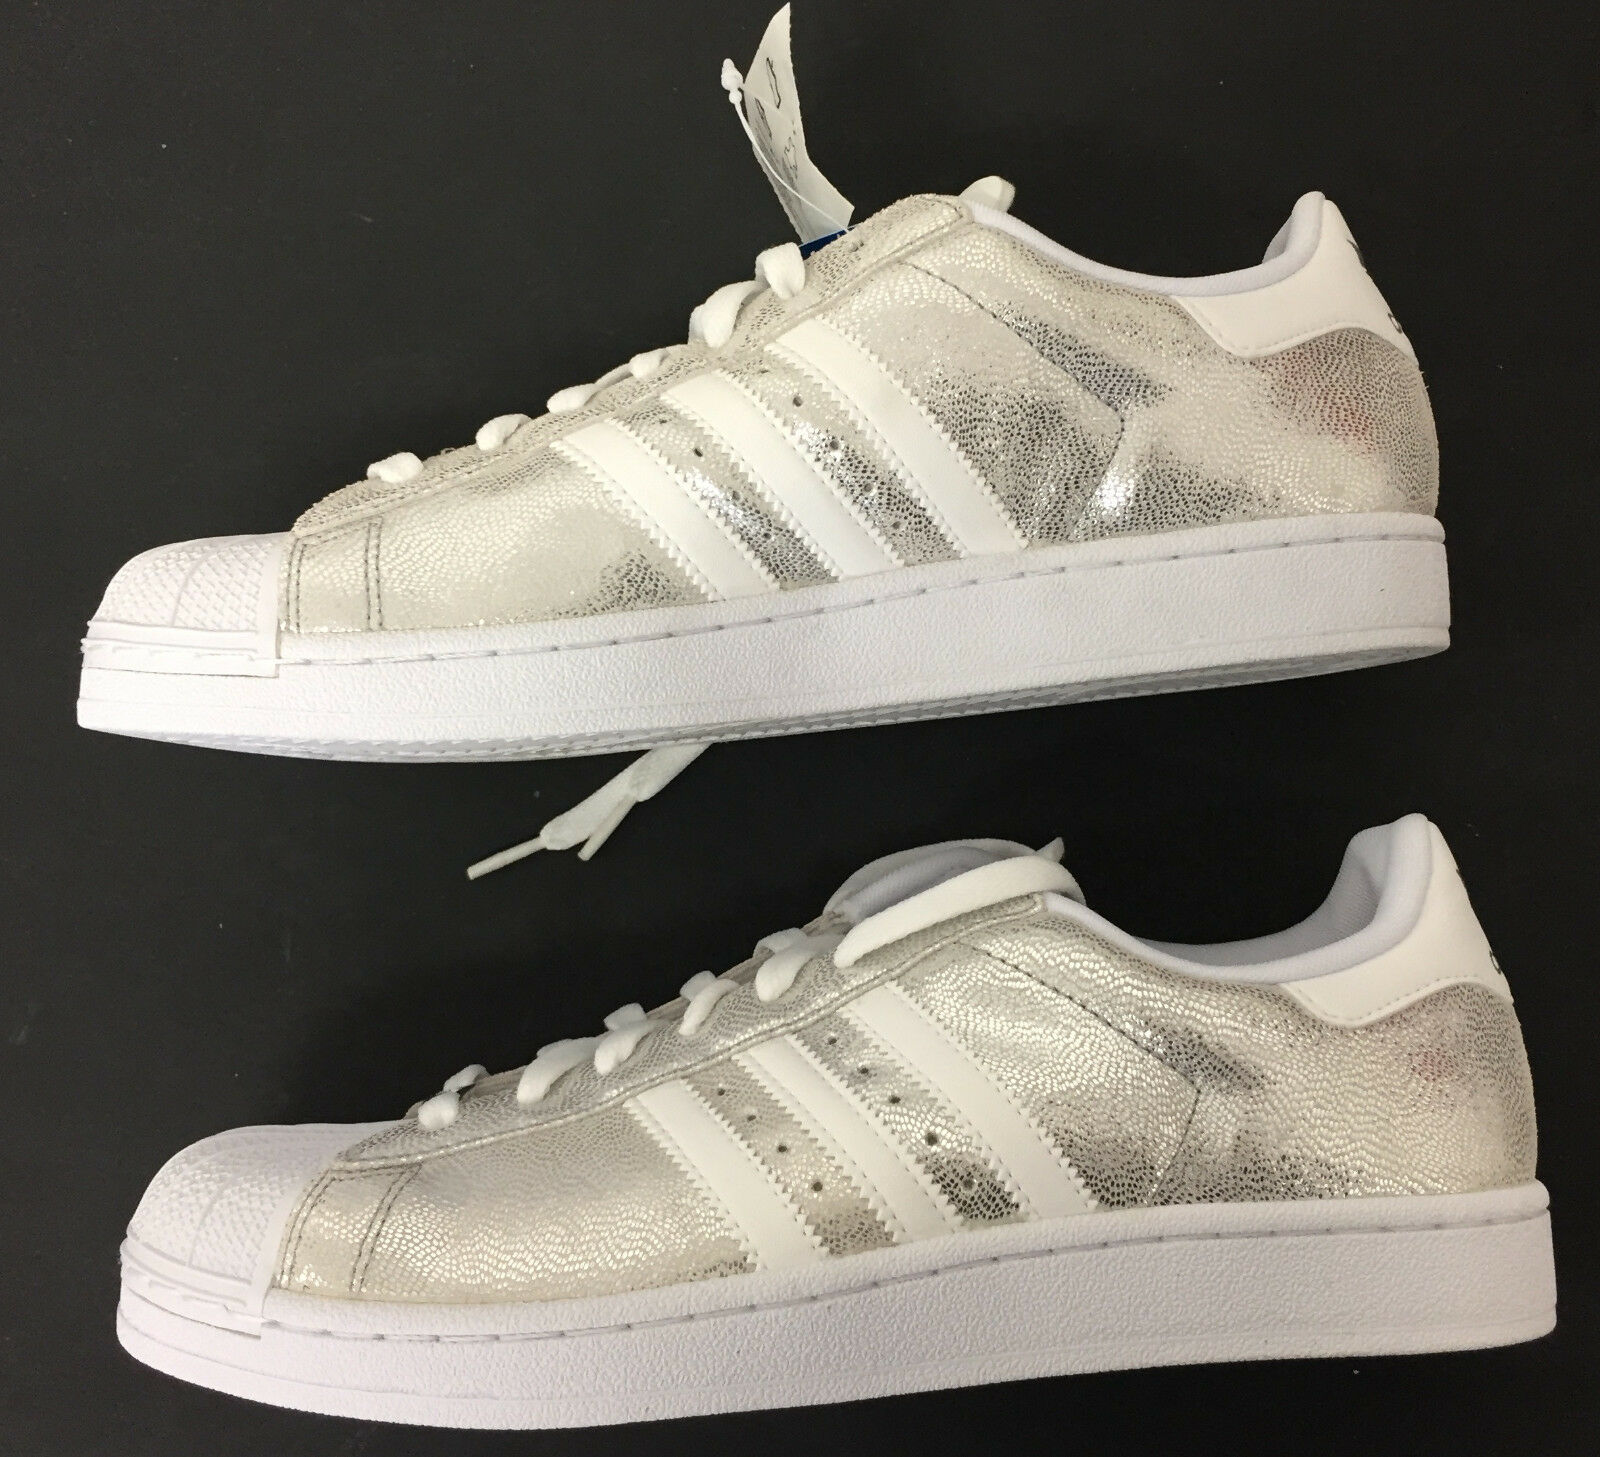 Adidas Originals Superstar 1 Silver Men's Basketball Sneakers 10 1 2  new w tags